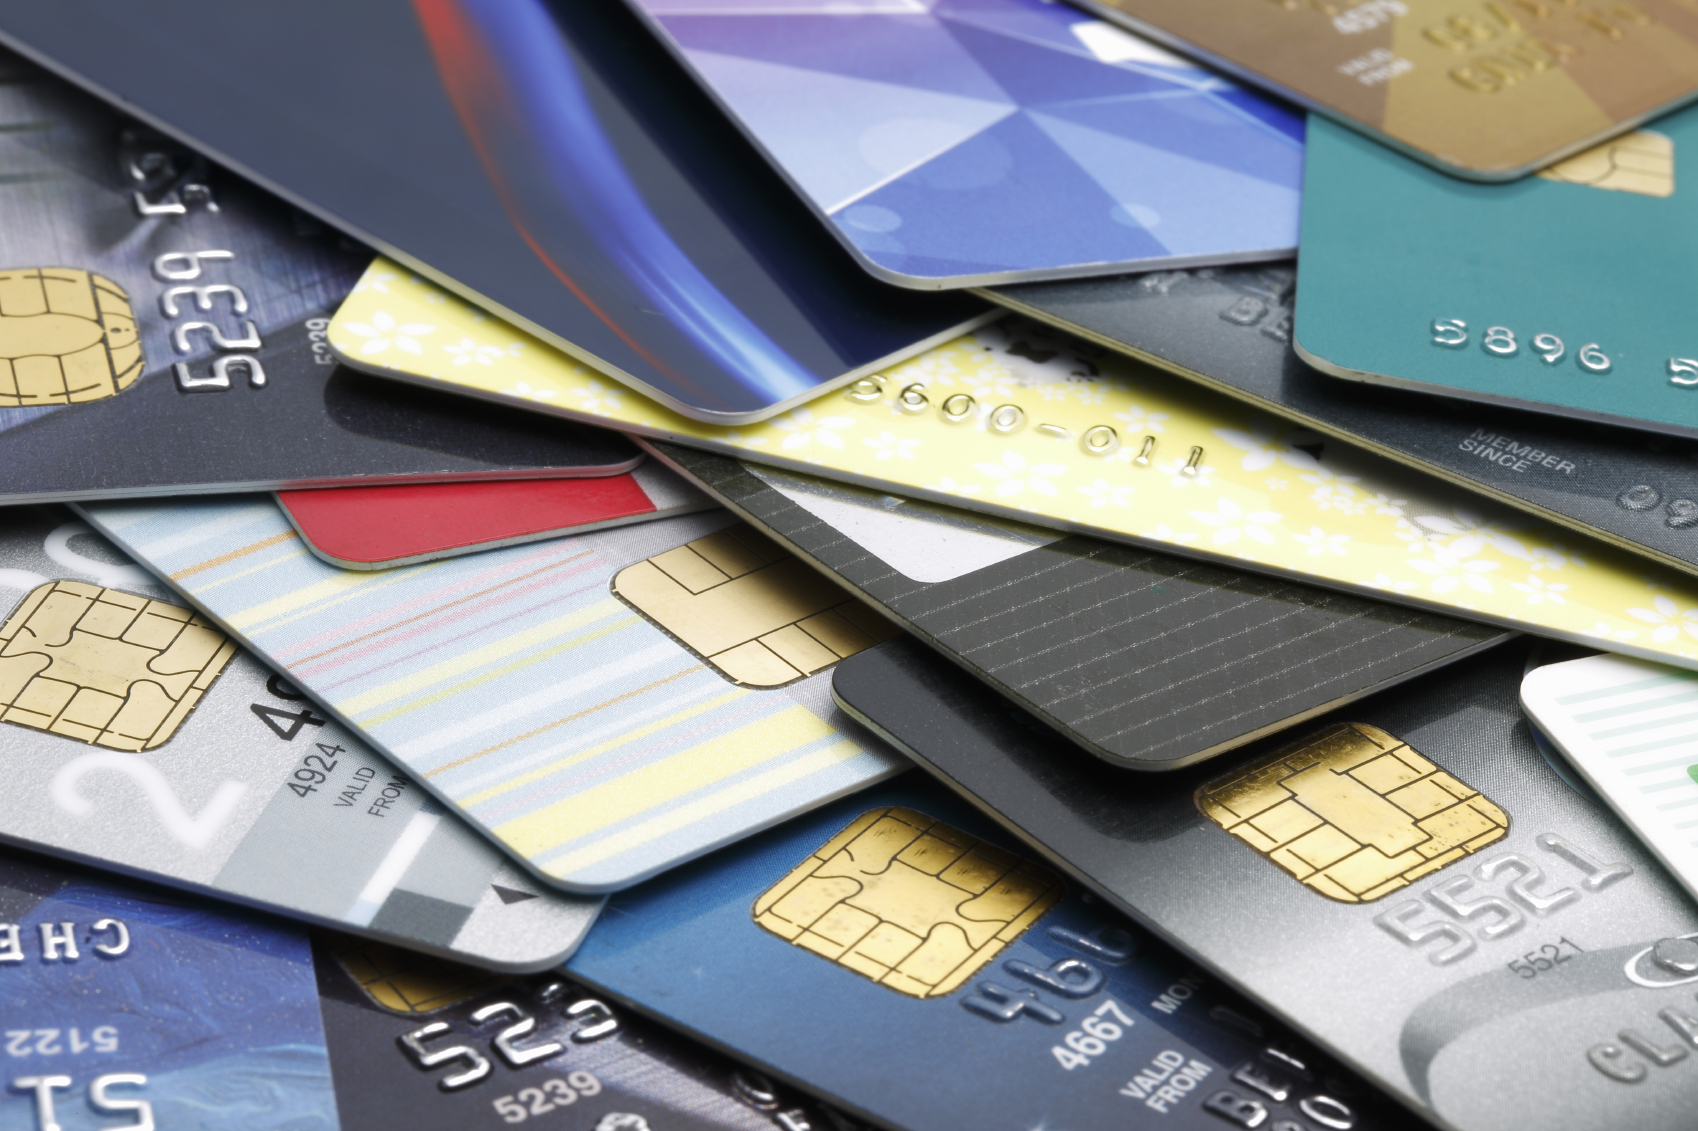 Magecart's 'shotgun approach' to payment card theft is